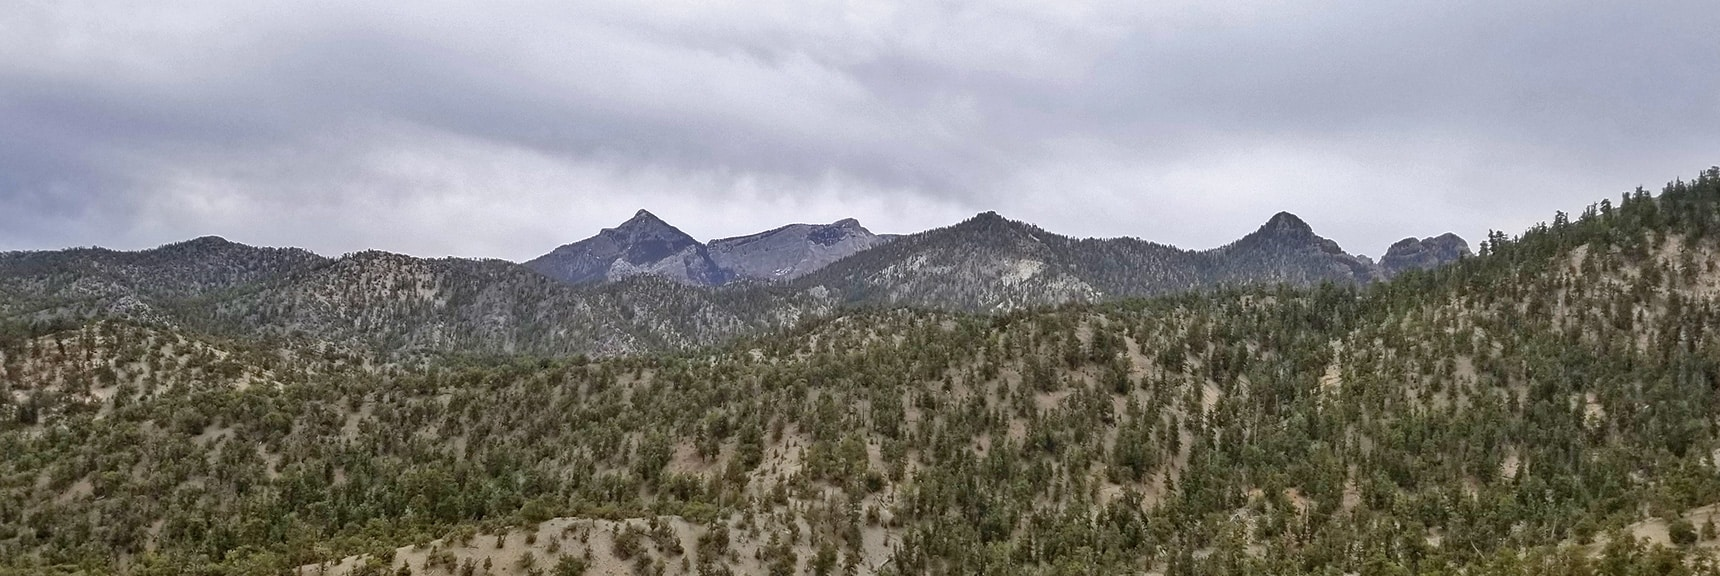 Mummy Mountain's Head Viewed from 9,235ft High Point Bluff   Sawmill Trail to McFarland Peak   Spring Mountains, Nevada